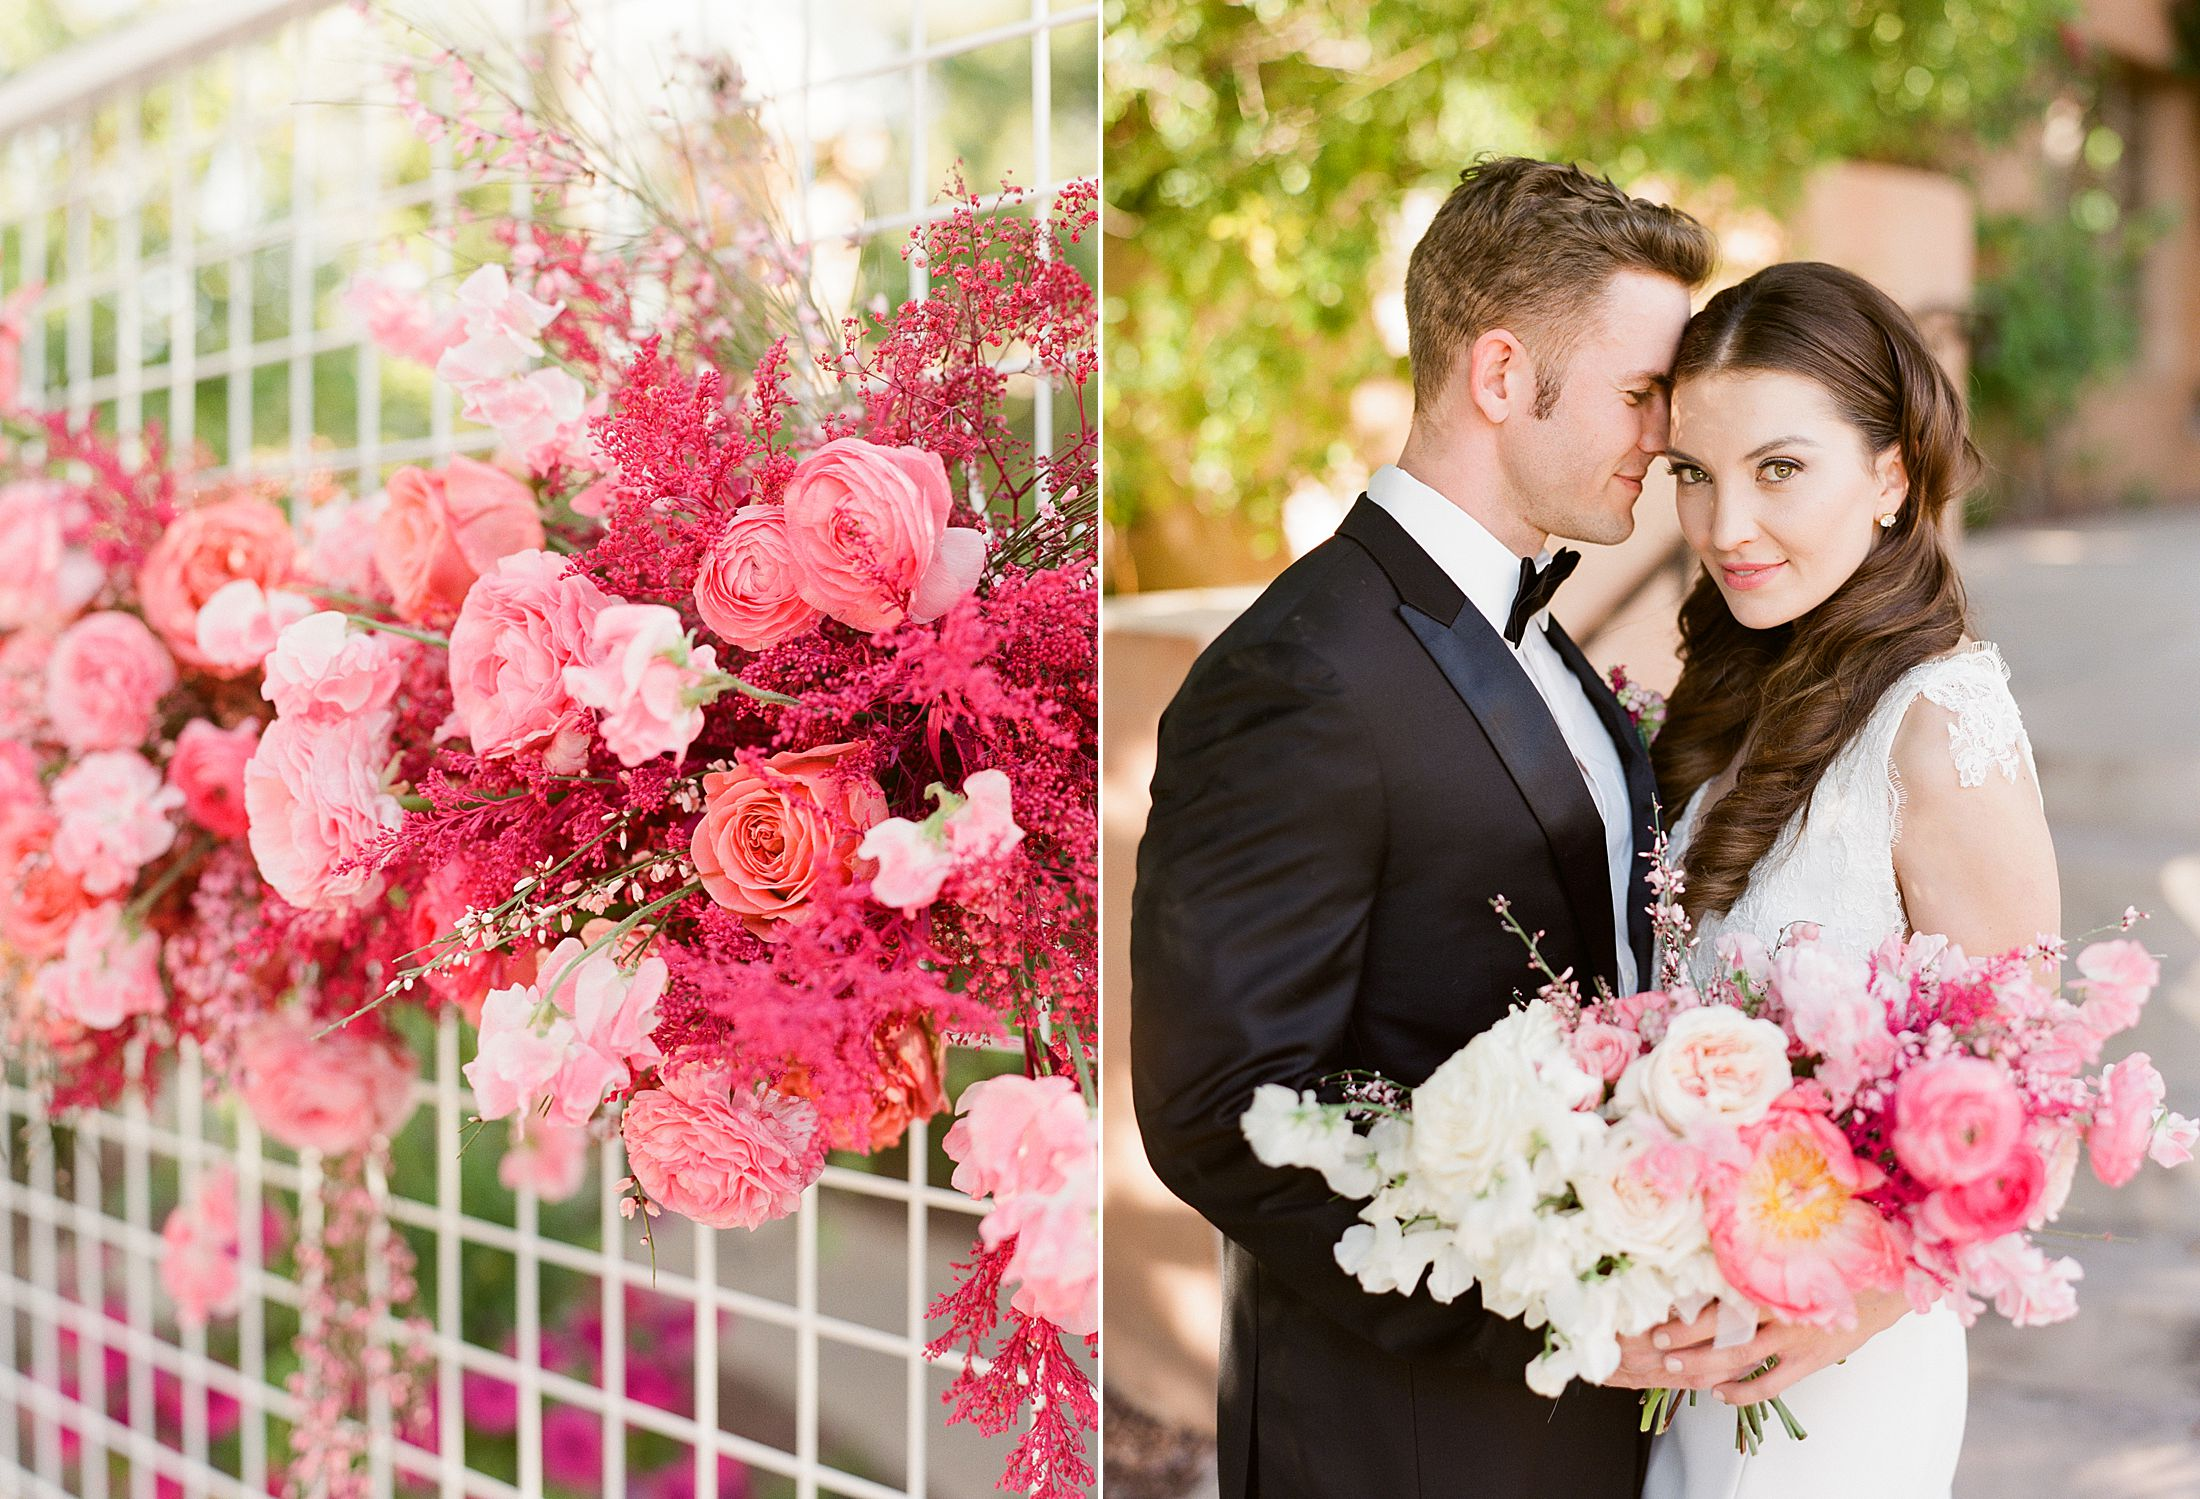 Pink Ombre Wedding Inspiration on Style Me Pretty - Royal Palms Wedding - Scottsdale Wedding - Ashley Baumgartner - Bloom and Blueprint - Wedding Puppies - Bulldog Puppies_0050.jpg